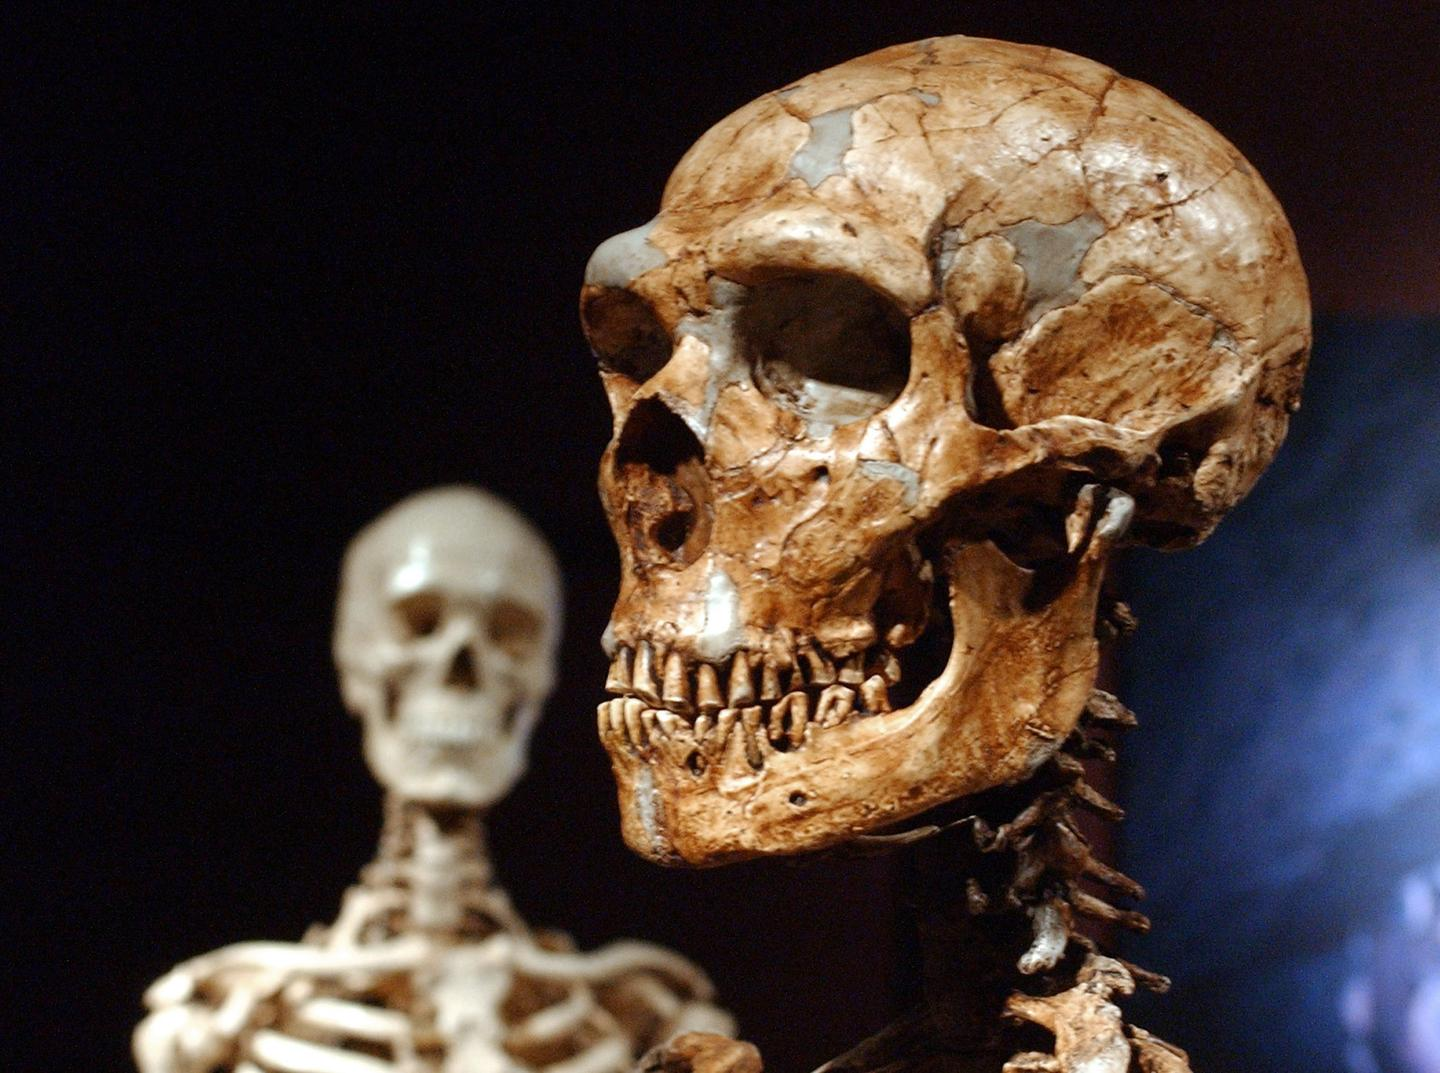 Neanderthals Cared for Each Other and Survived into Old Age